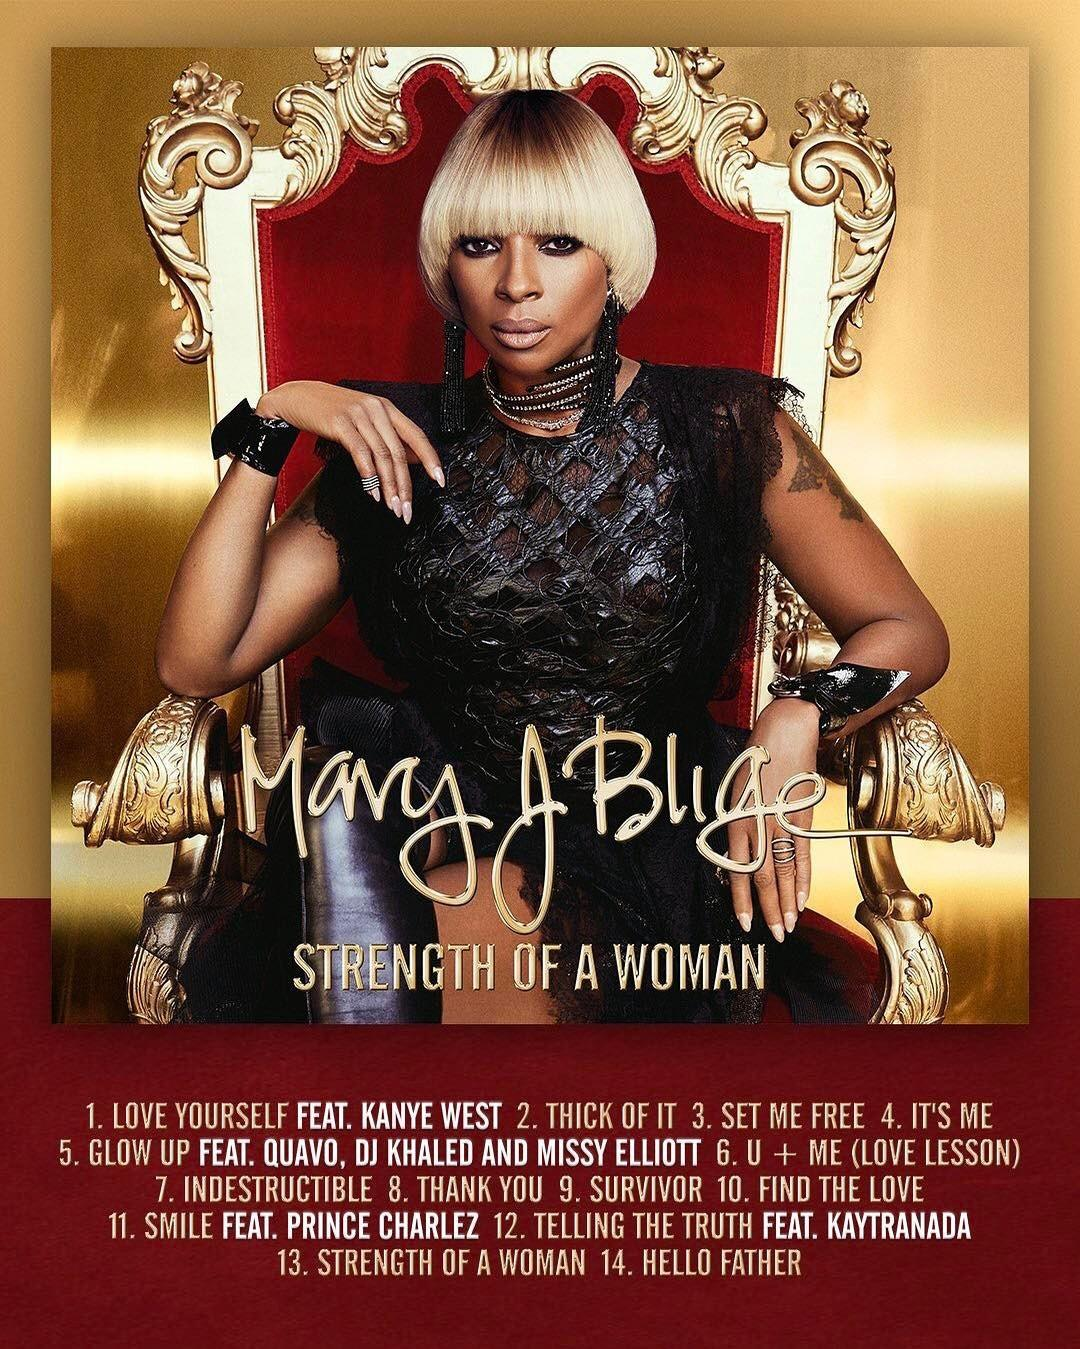 Kaytranada to Feature on Mary J. Blige's New Album, 'Strength  a Woman'